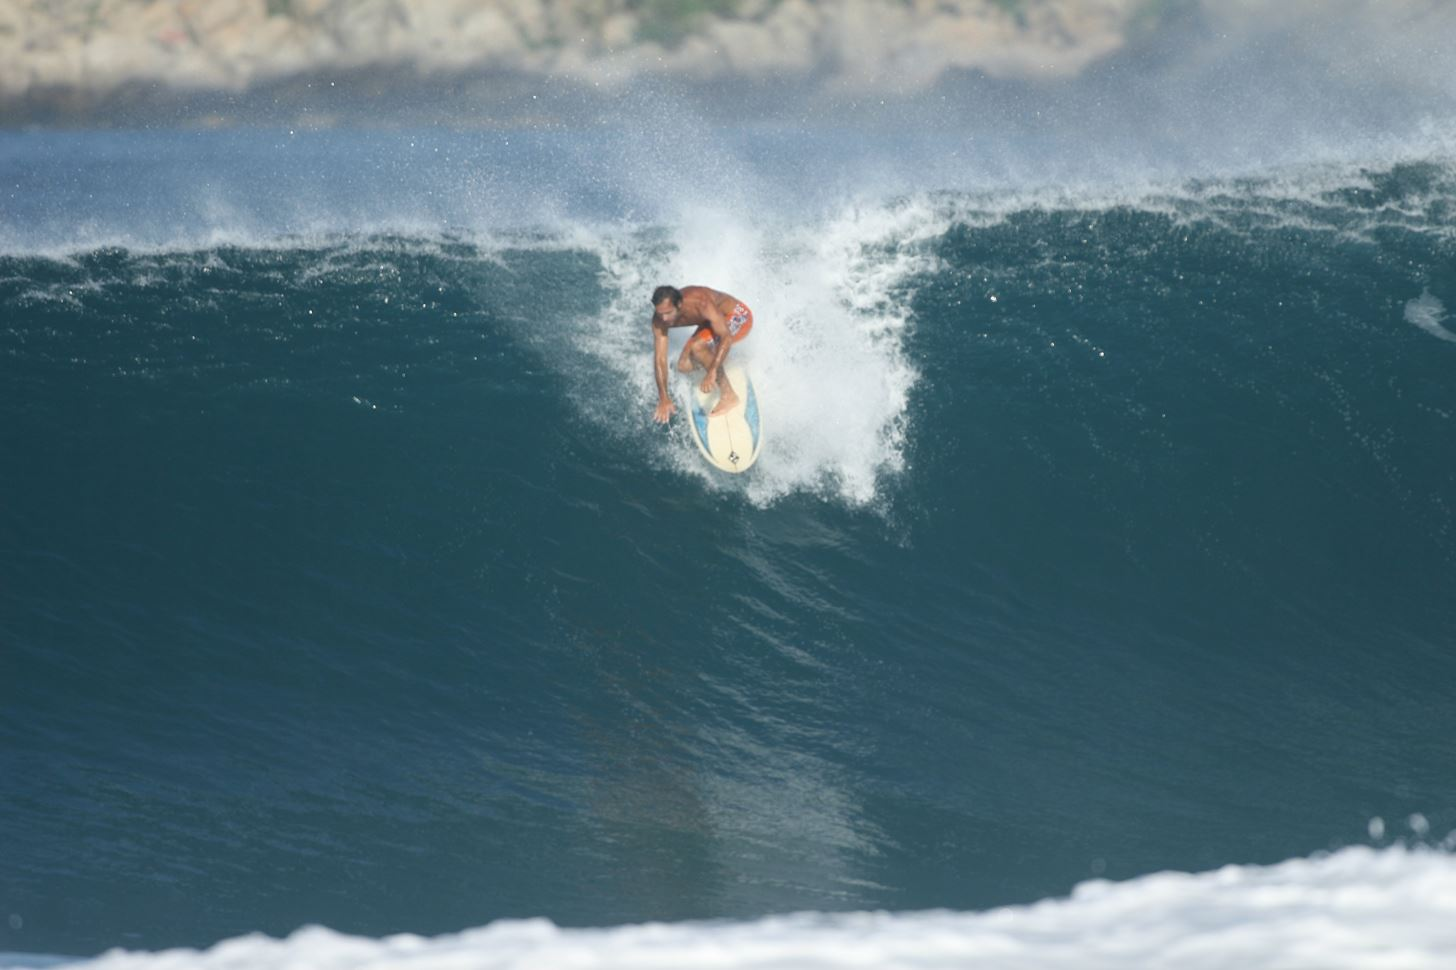 Gene Rink - Zicatela, Puerto Escondido